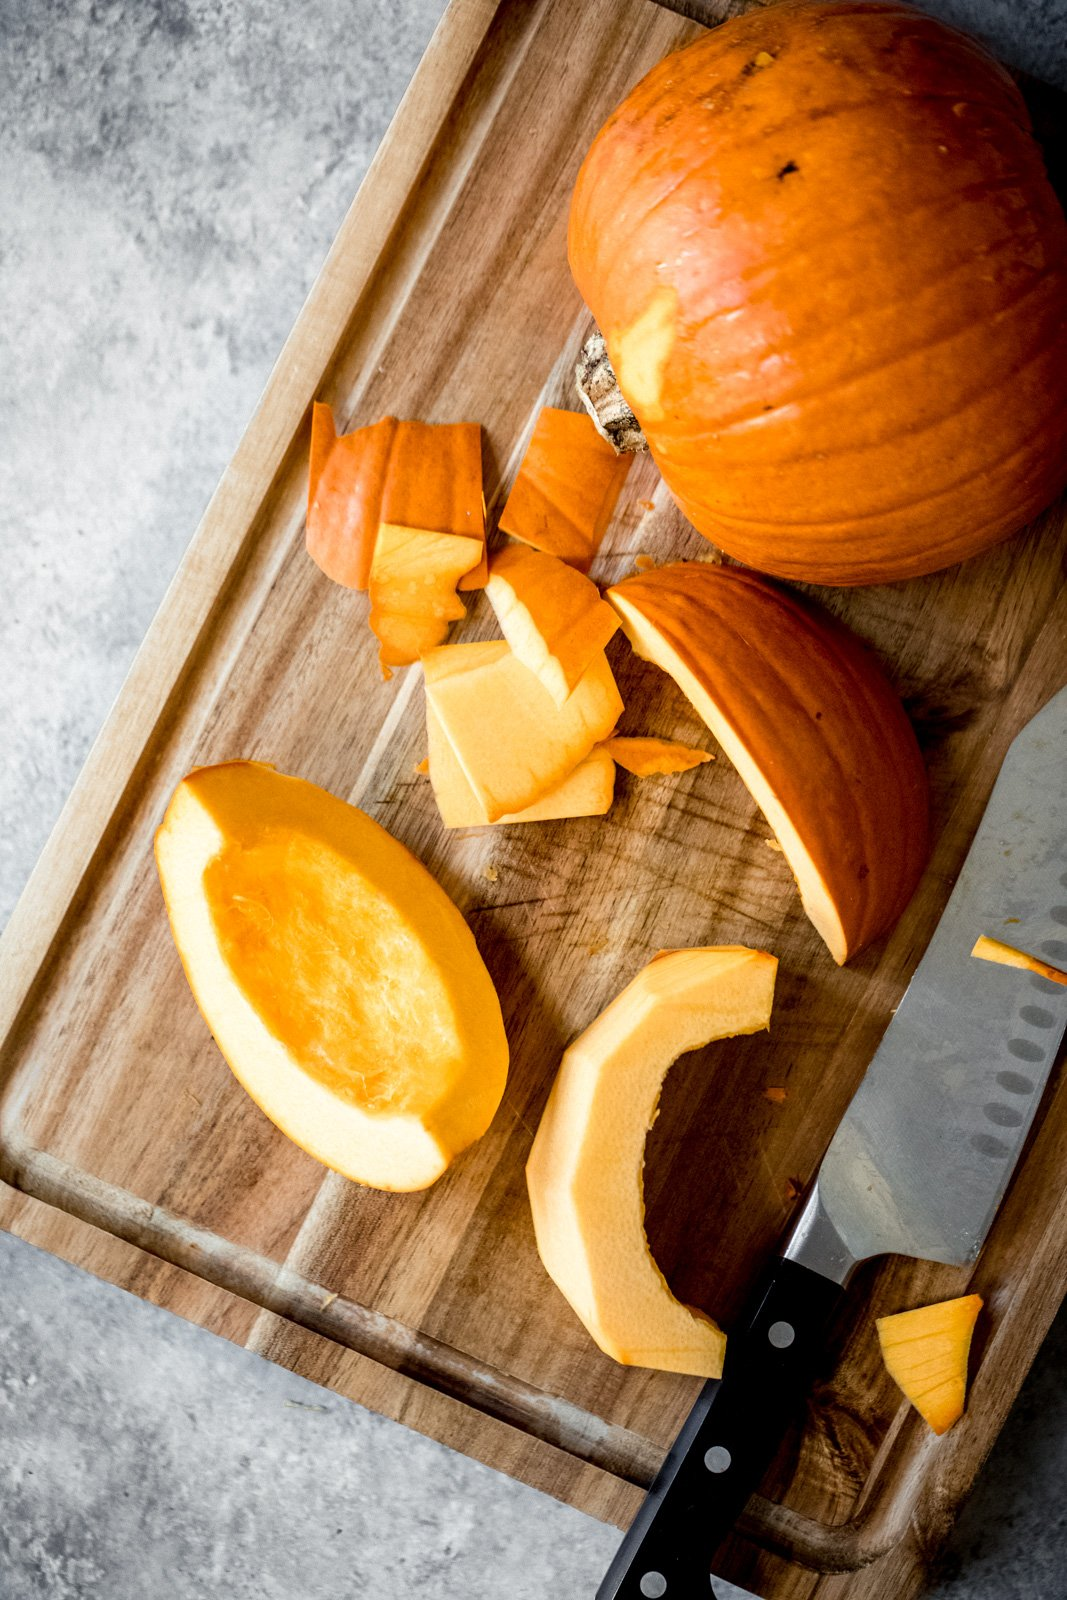 pumpkin cut into pieces on a cutting board with a knife